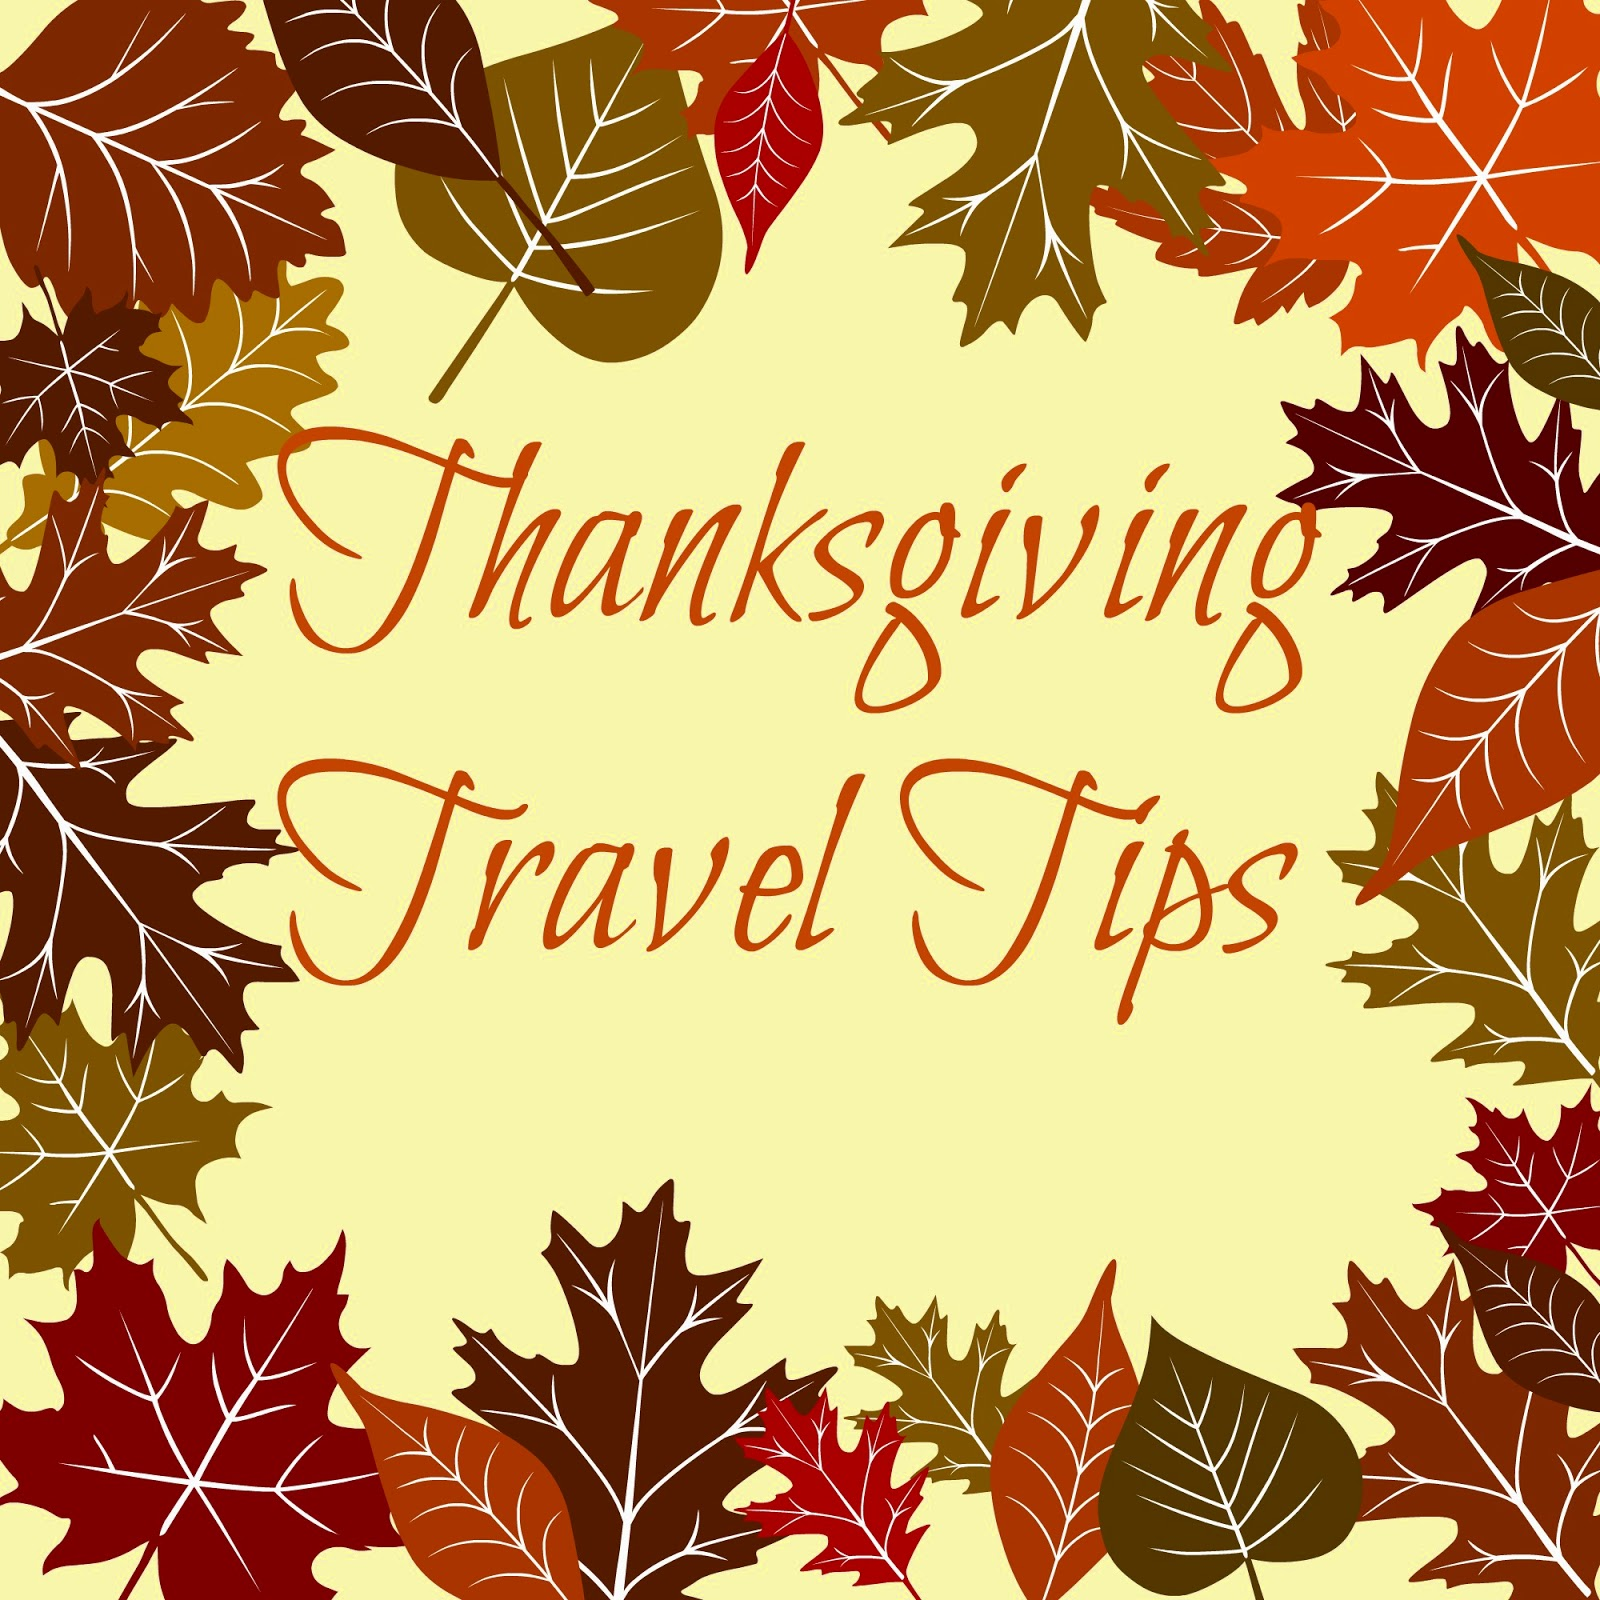 Best Travel Times for a Stress-Free Thanksgiving